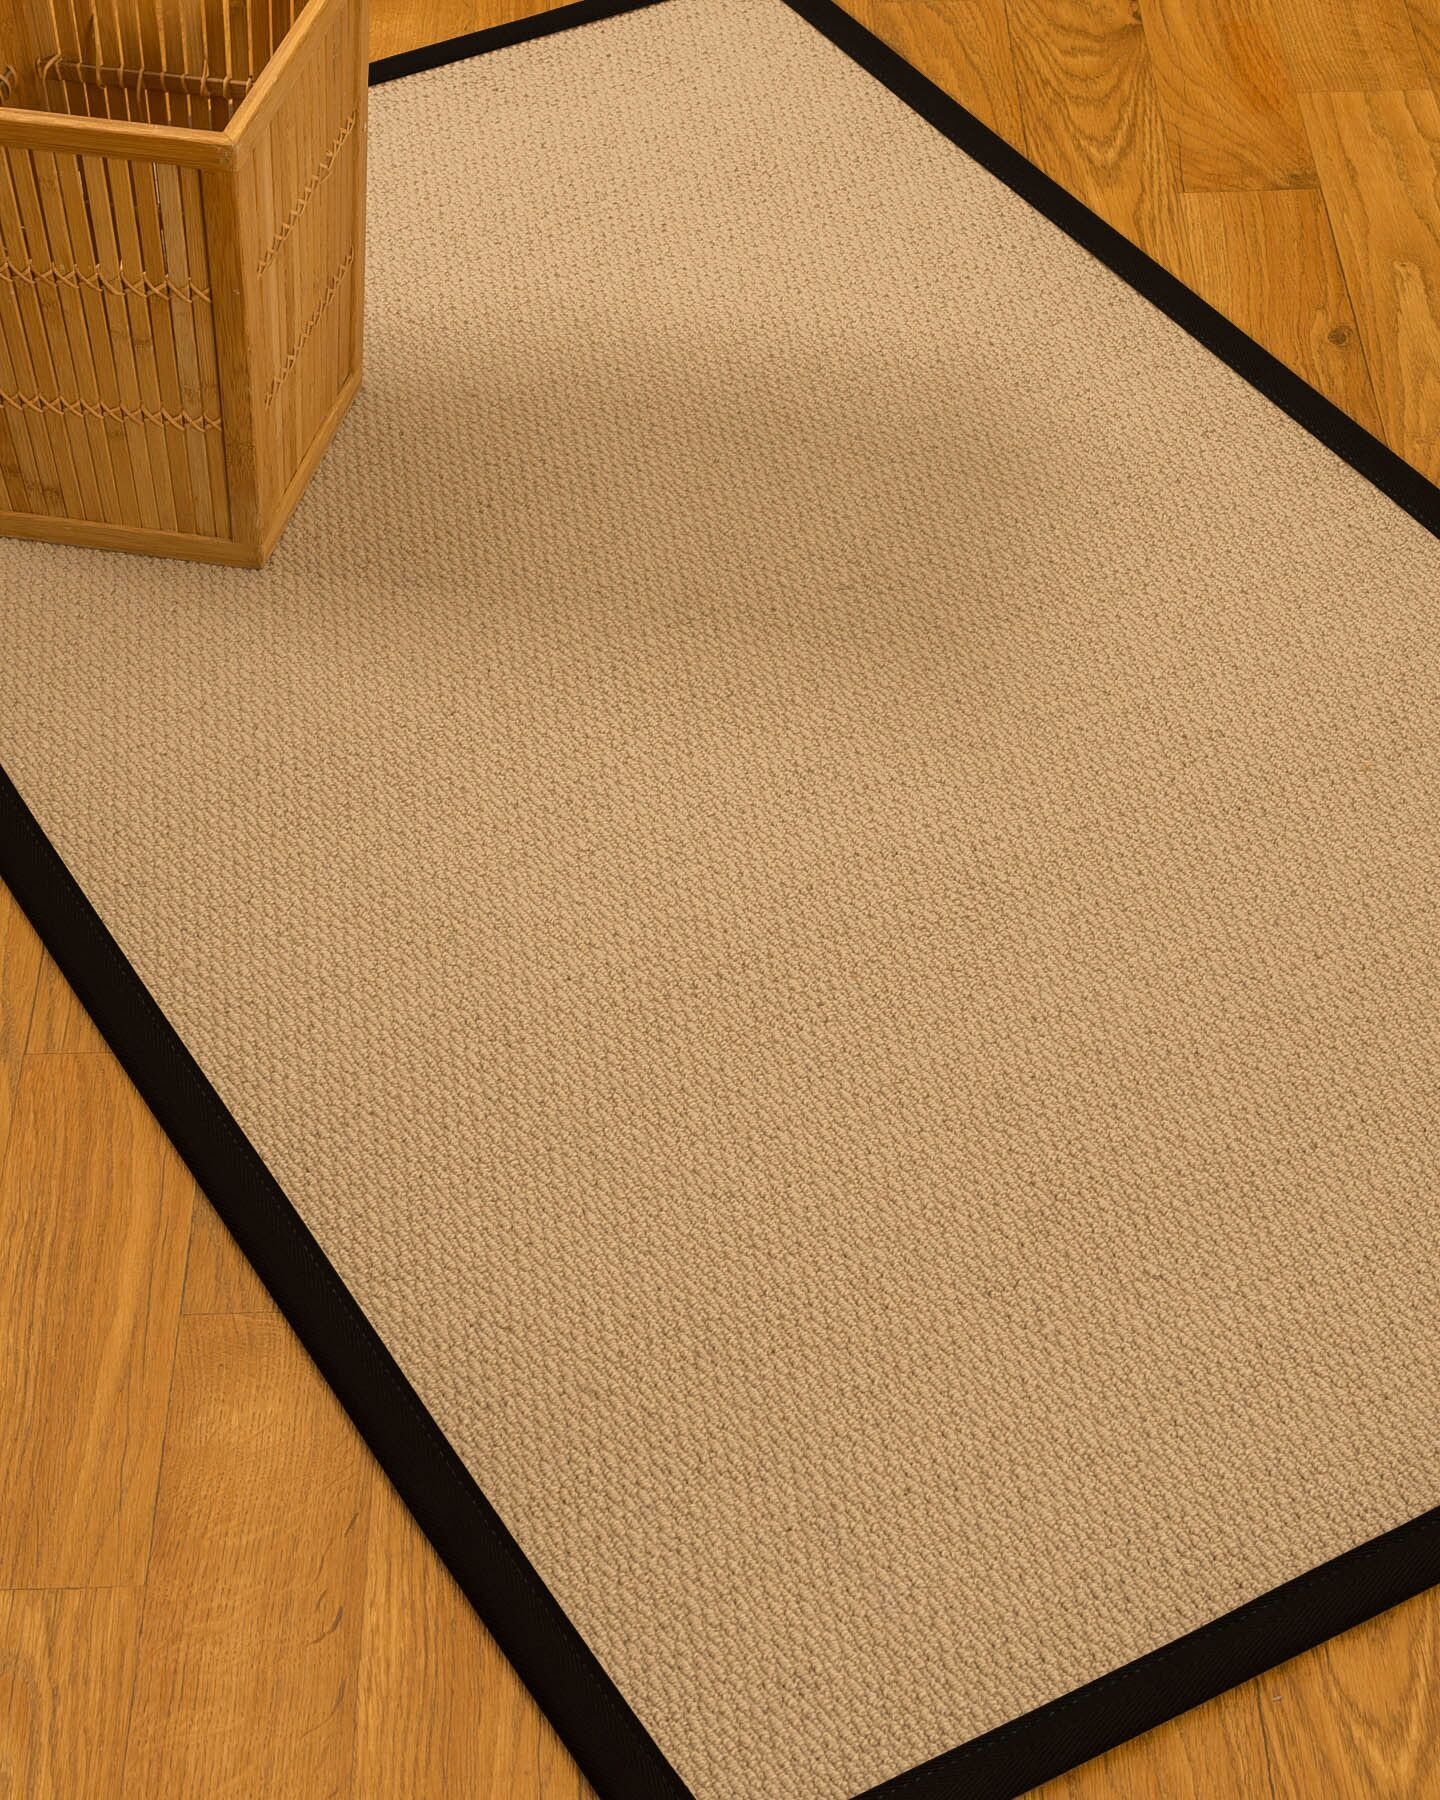 Chea Border Hand-Woven Wool Beige/Black Area Rug Rug Pad Included: No, Rug Size: Rectangle 3' x 5'